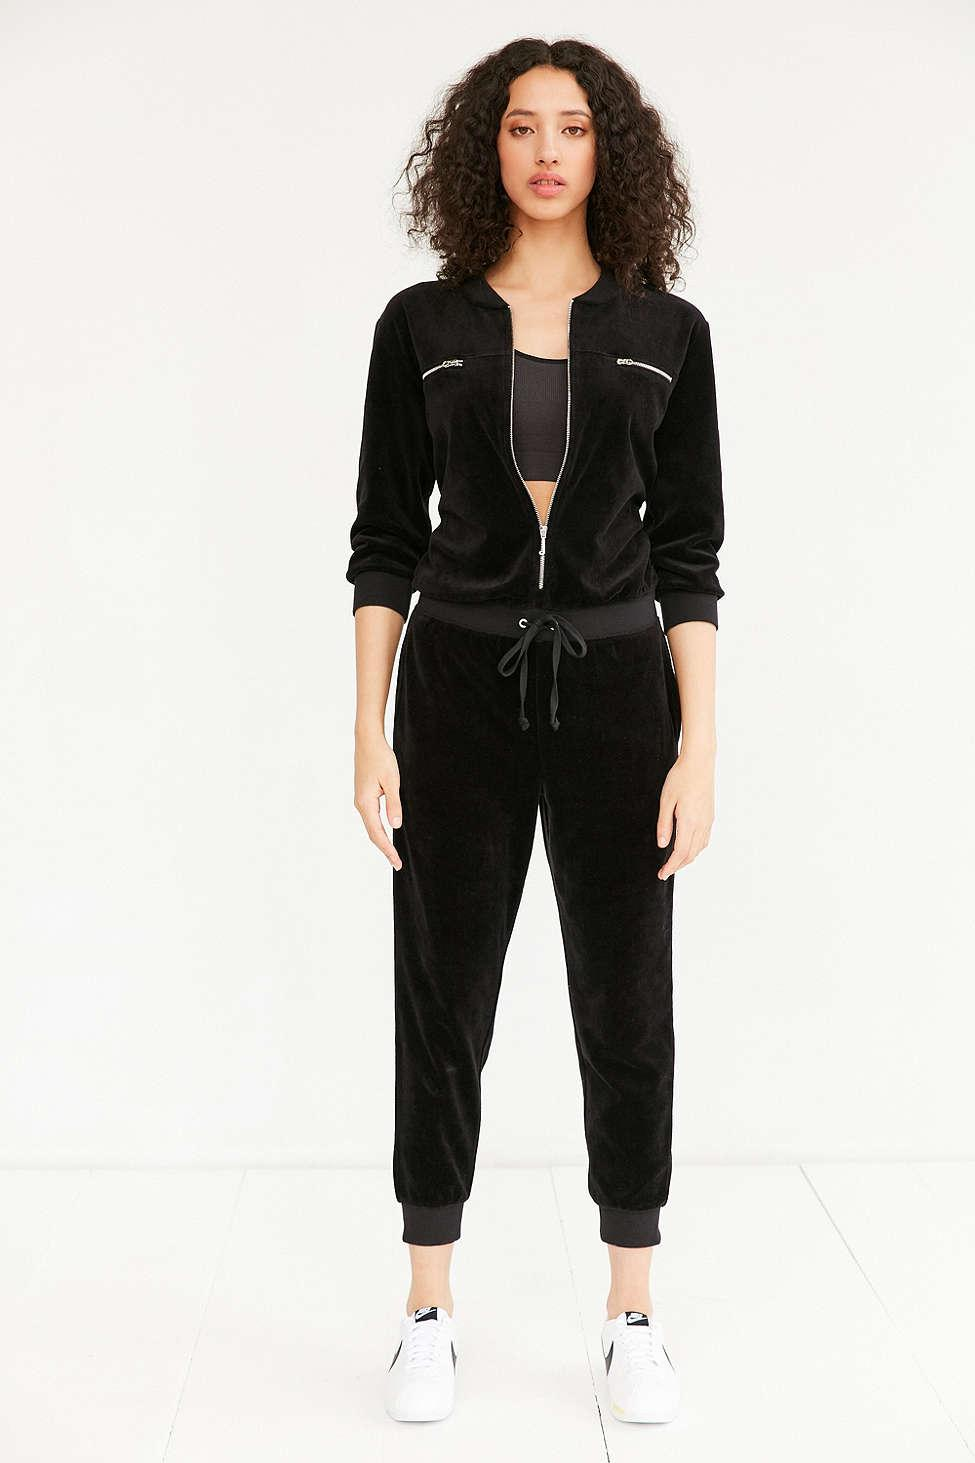 a8dfd5d3b5c Velour Overalls For Women Related Keywords   Suggestions - Velour ...